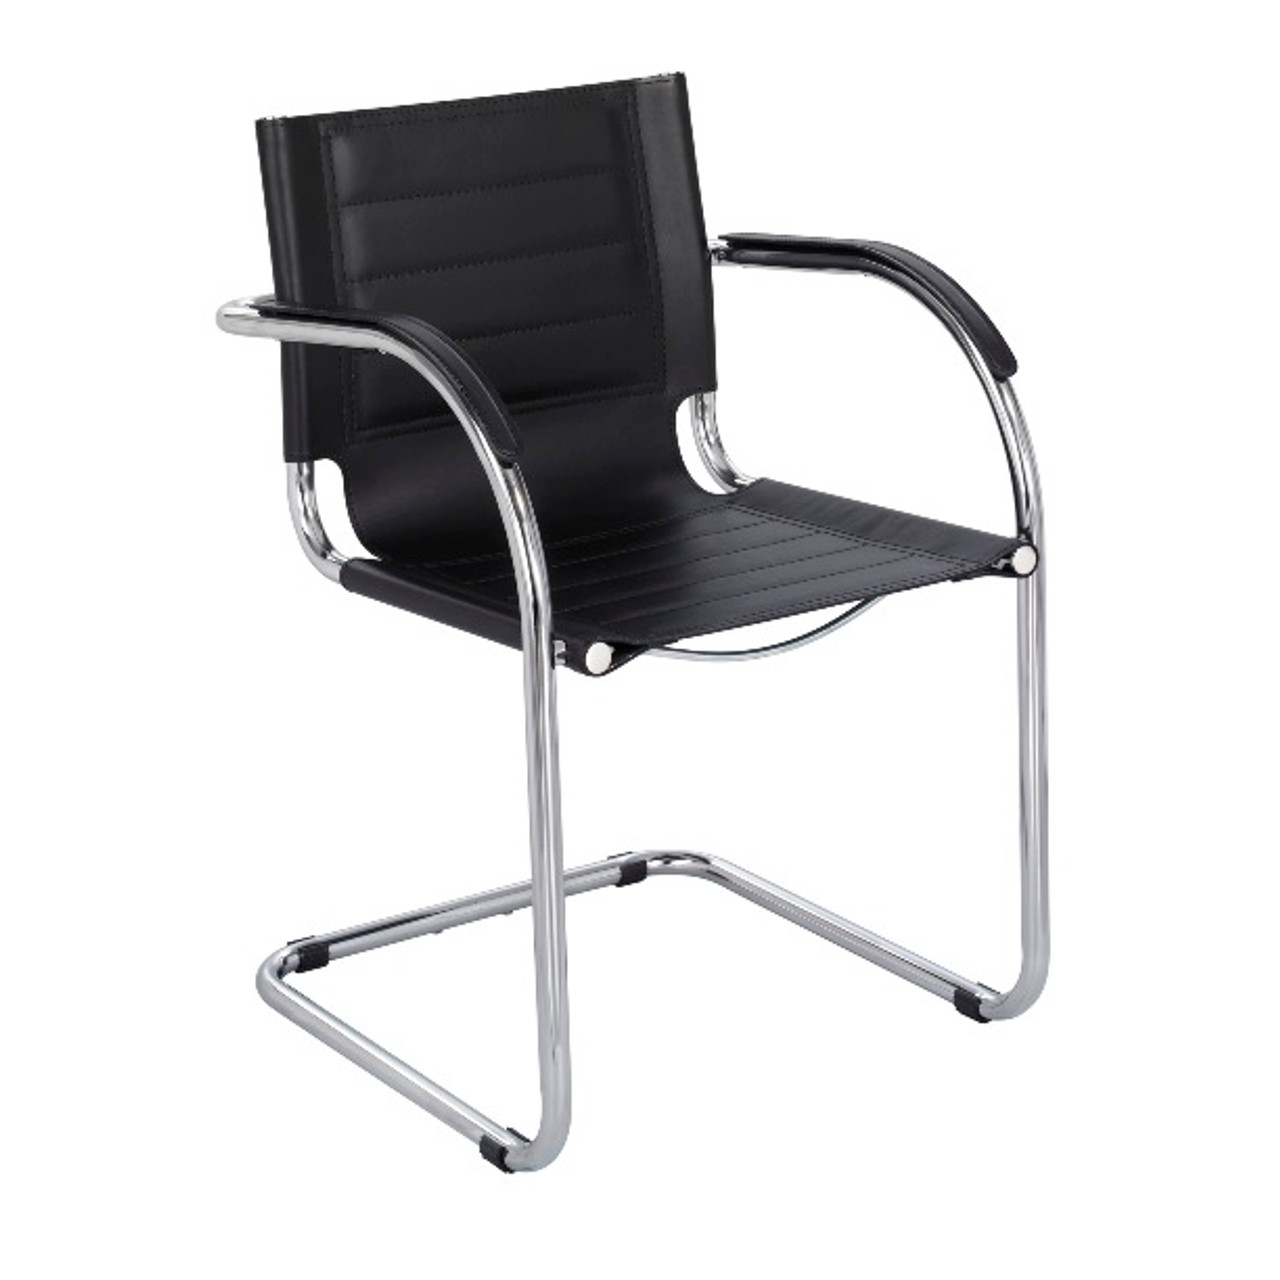 free shipping 90f7b 79ac6 Safco 3457 Guest Chair 18 Inch Seat Height